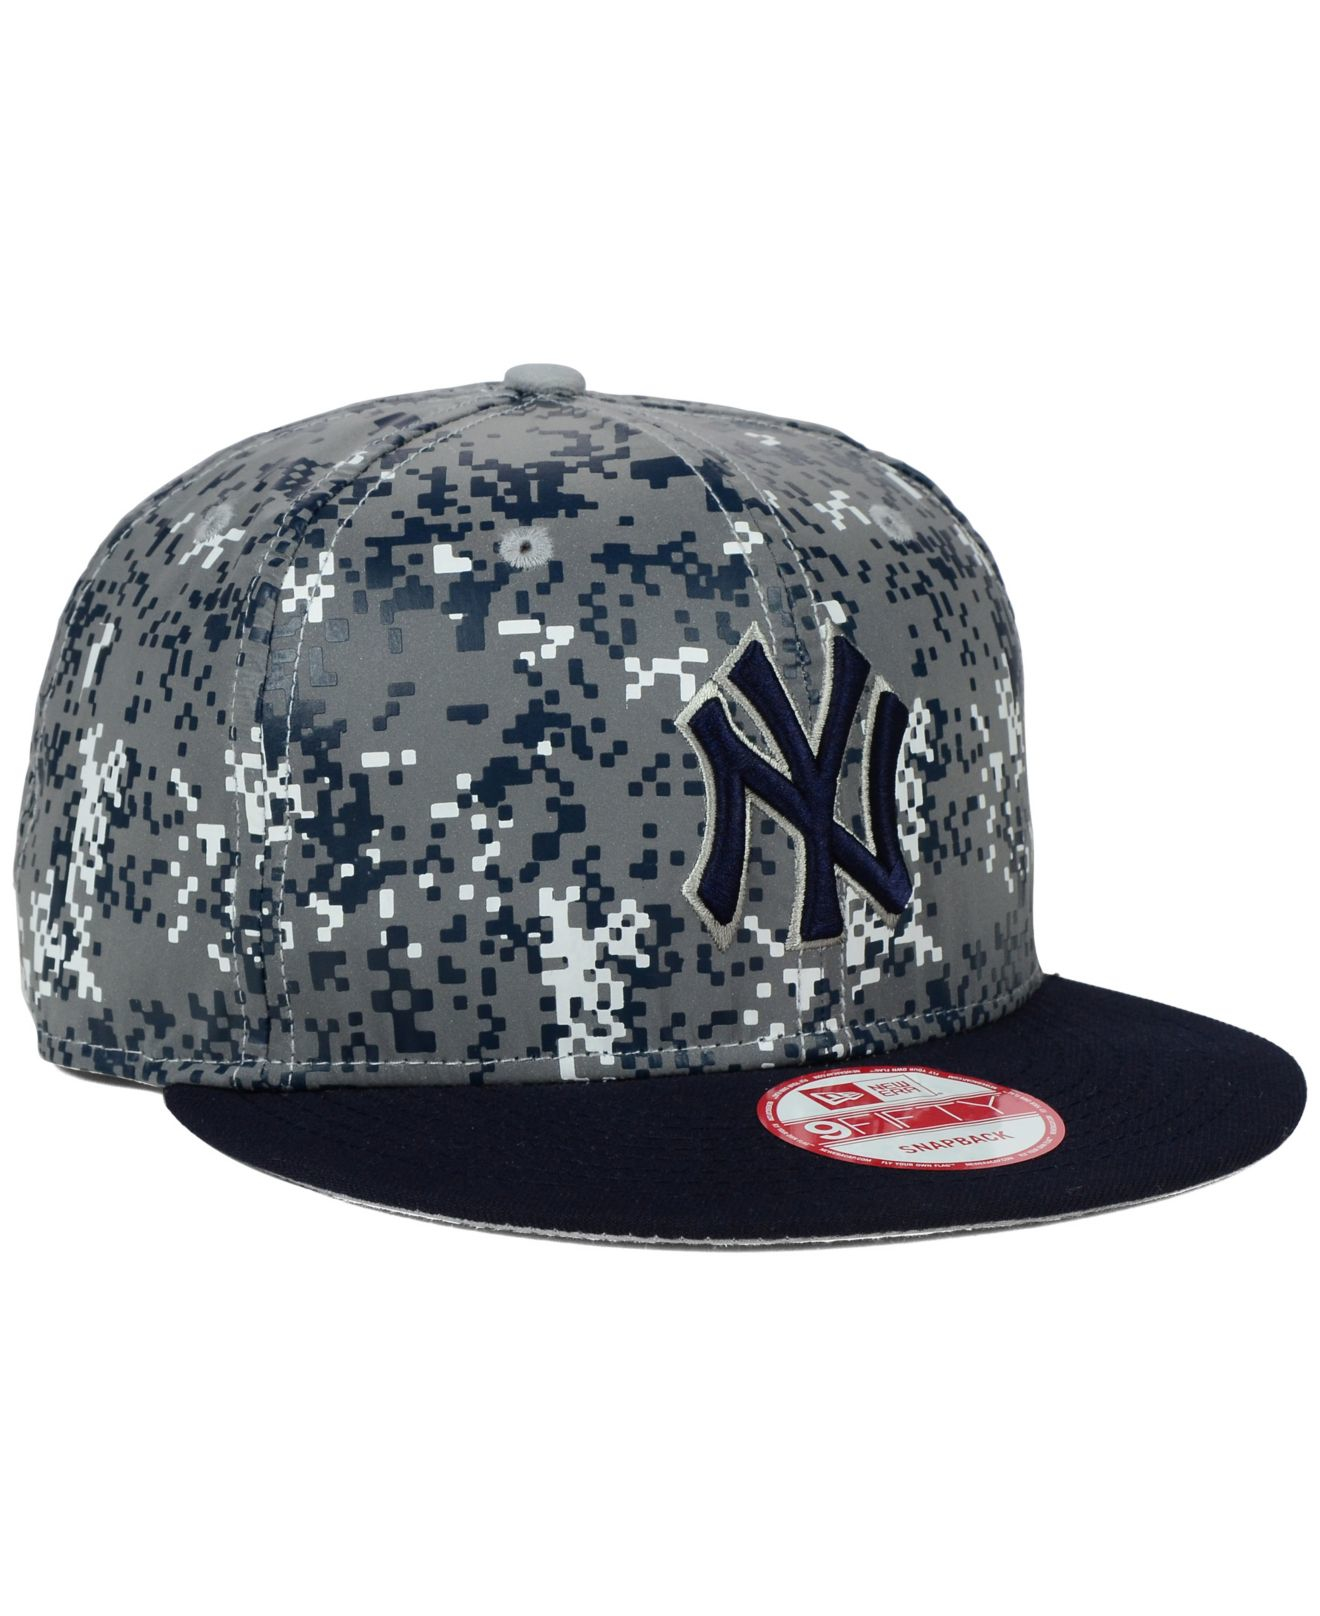 quality design a2683 f0415 KTZ New York Yankees Dc Reflective 9fifty Snapback Cap in Gray for ...